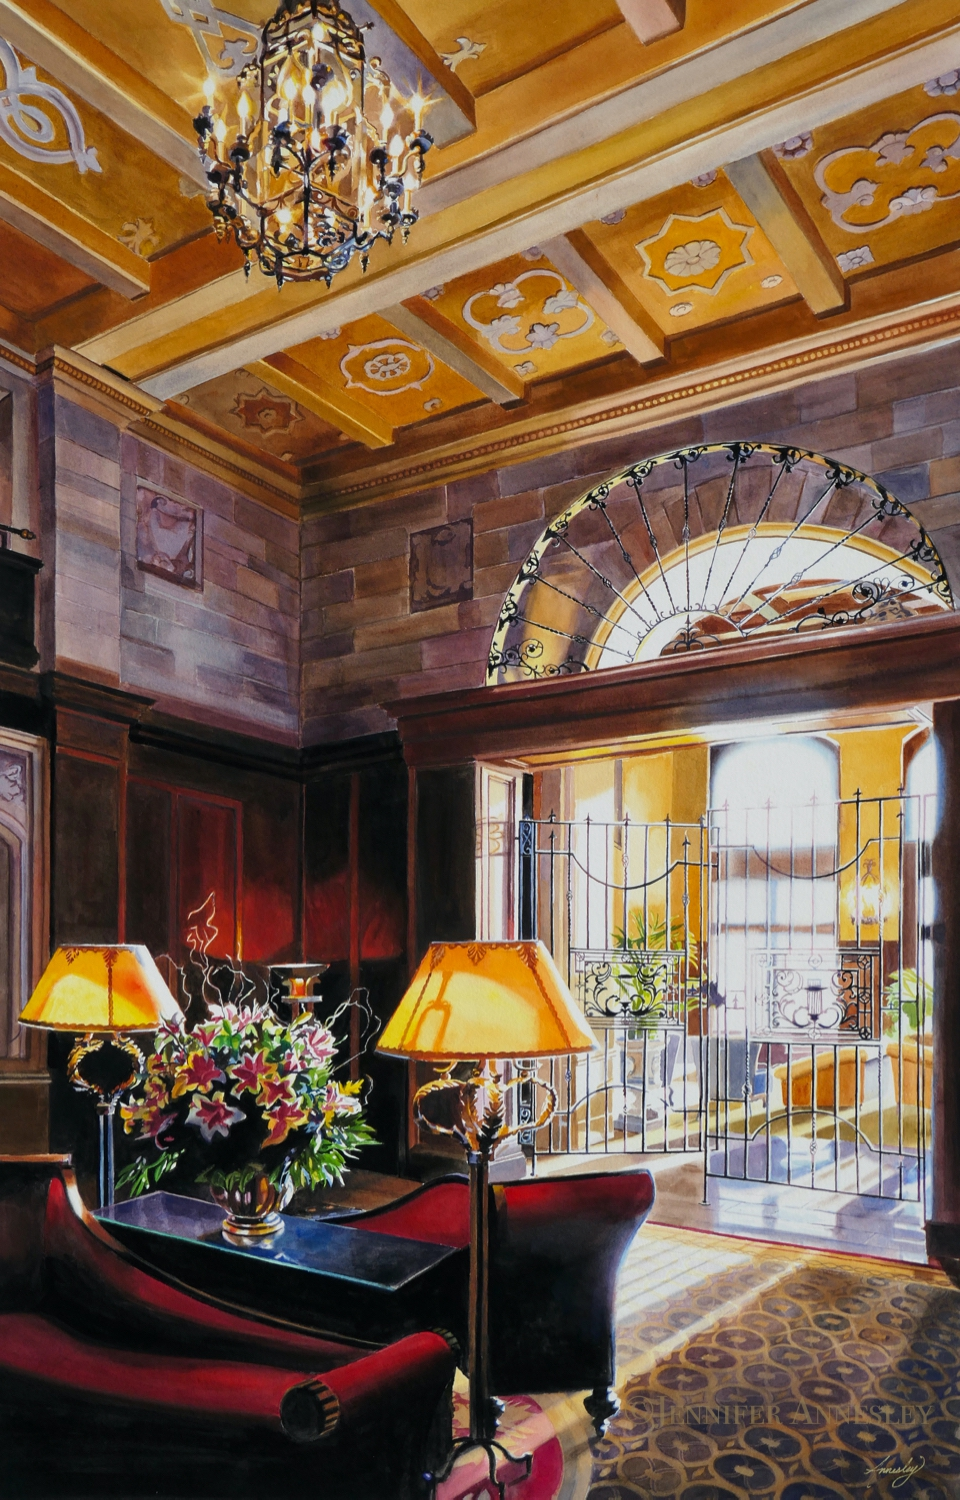 """Morning Light"" (Watercolour) 25 years ago we chose the Fairmont Hotel Macdonald as the venue for my annual exhibition for its architectural beauty, historical and personal significance and location atop Edmonton's river valley."